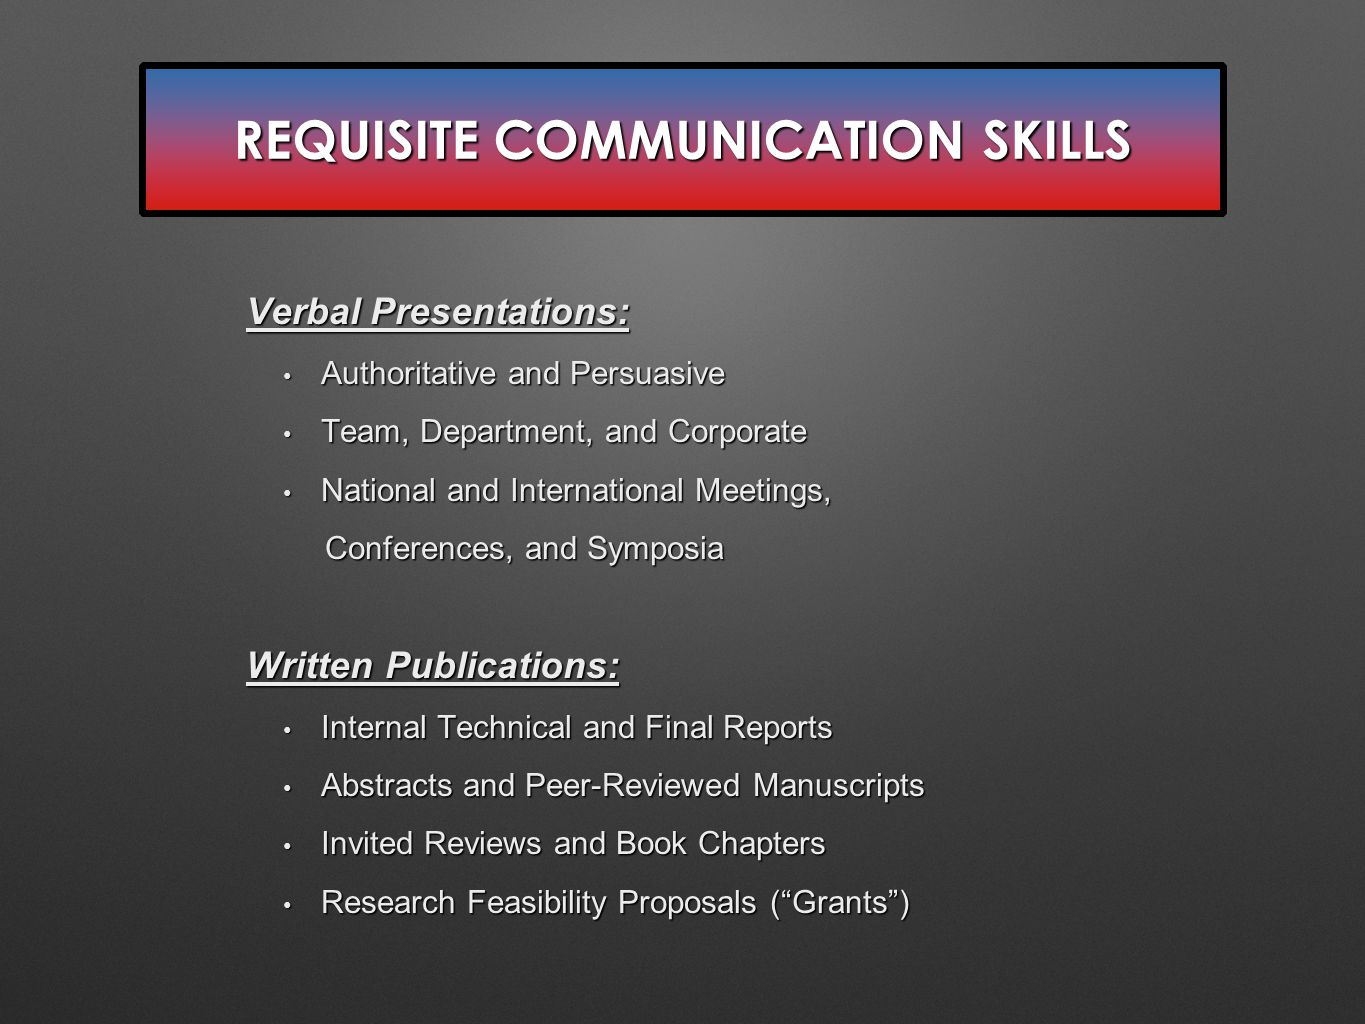 REQUISITE COMMUNICATION SKILLS Verbal Presentations: Authoritative and Persuasive Authoritative and Persuasive Team, Department, and Corporate Team, Department, and Corporate National and International Meetings, National and International Meetings, Conferences, and Symposia Conferences, and Symposia Written Publications: Internal Technical and Final Reports Internal Technical and Final Reports Abstracts and Peer-Reviewed Manuscripts Abstracts and Peer-Reviewed Manuscripts Invited Reviews and Book Chapters Invited Reviews and Book Chapters Research Feasibility Proposals ( Grants ) Research Feasibility Proposals ( Grants )